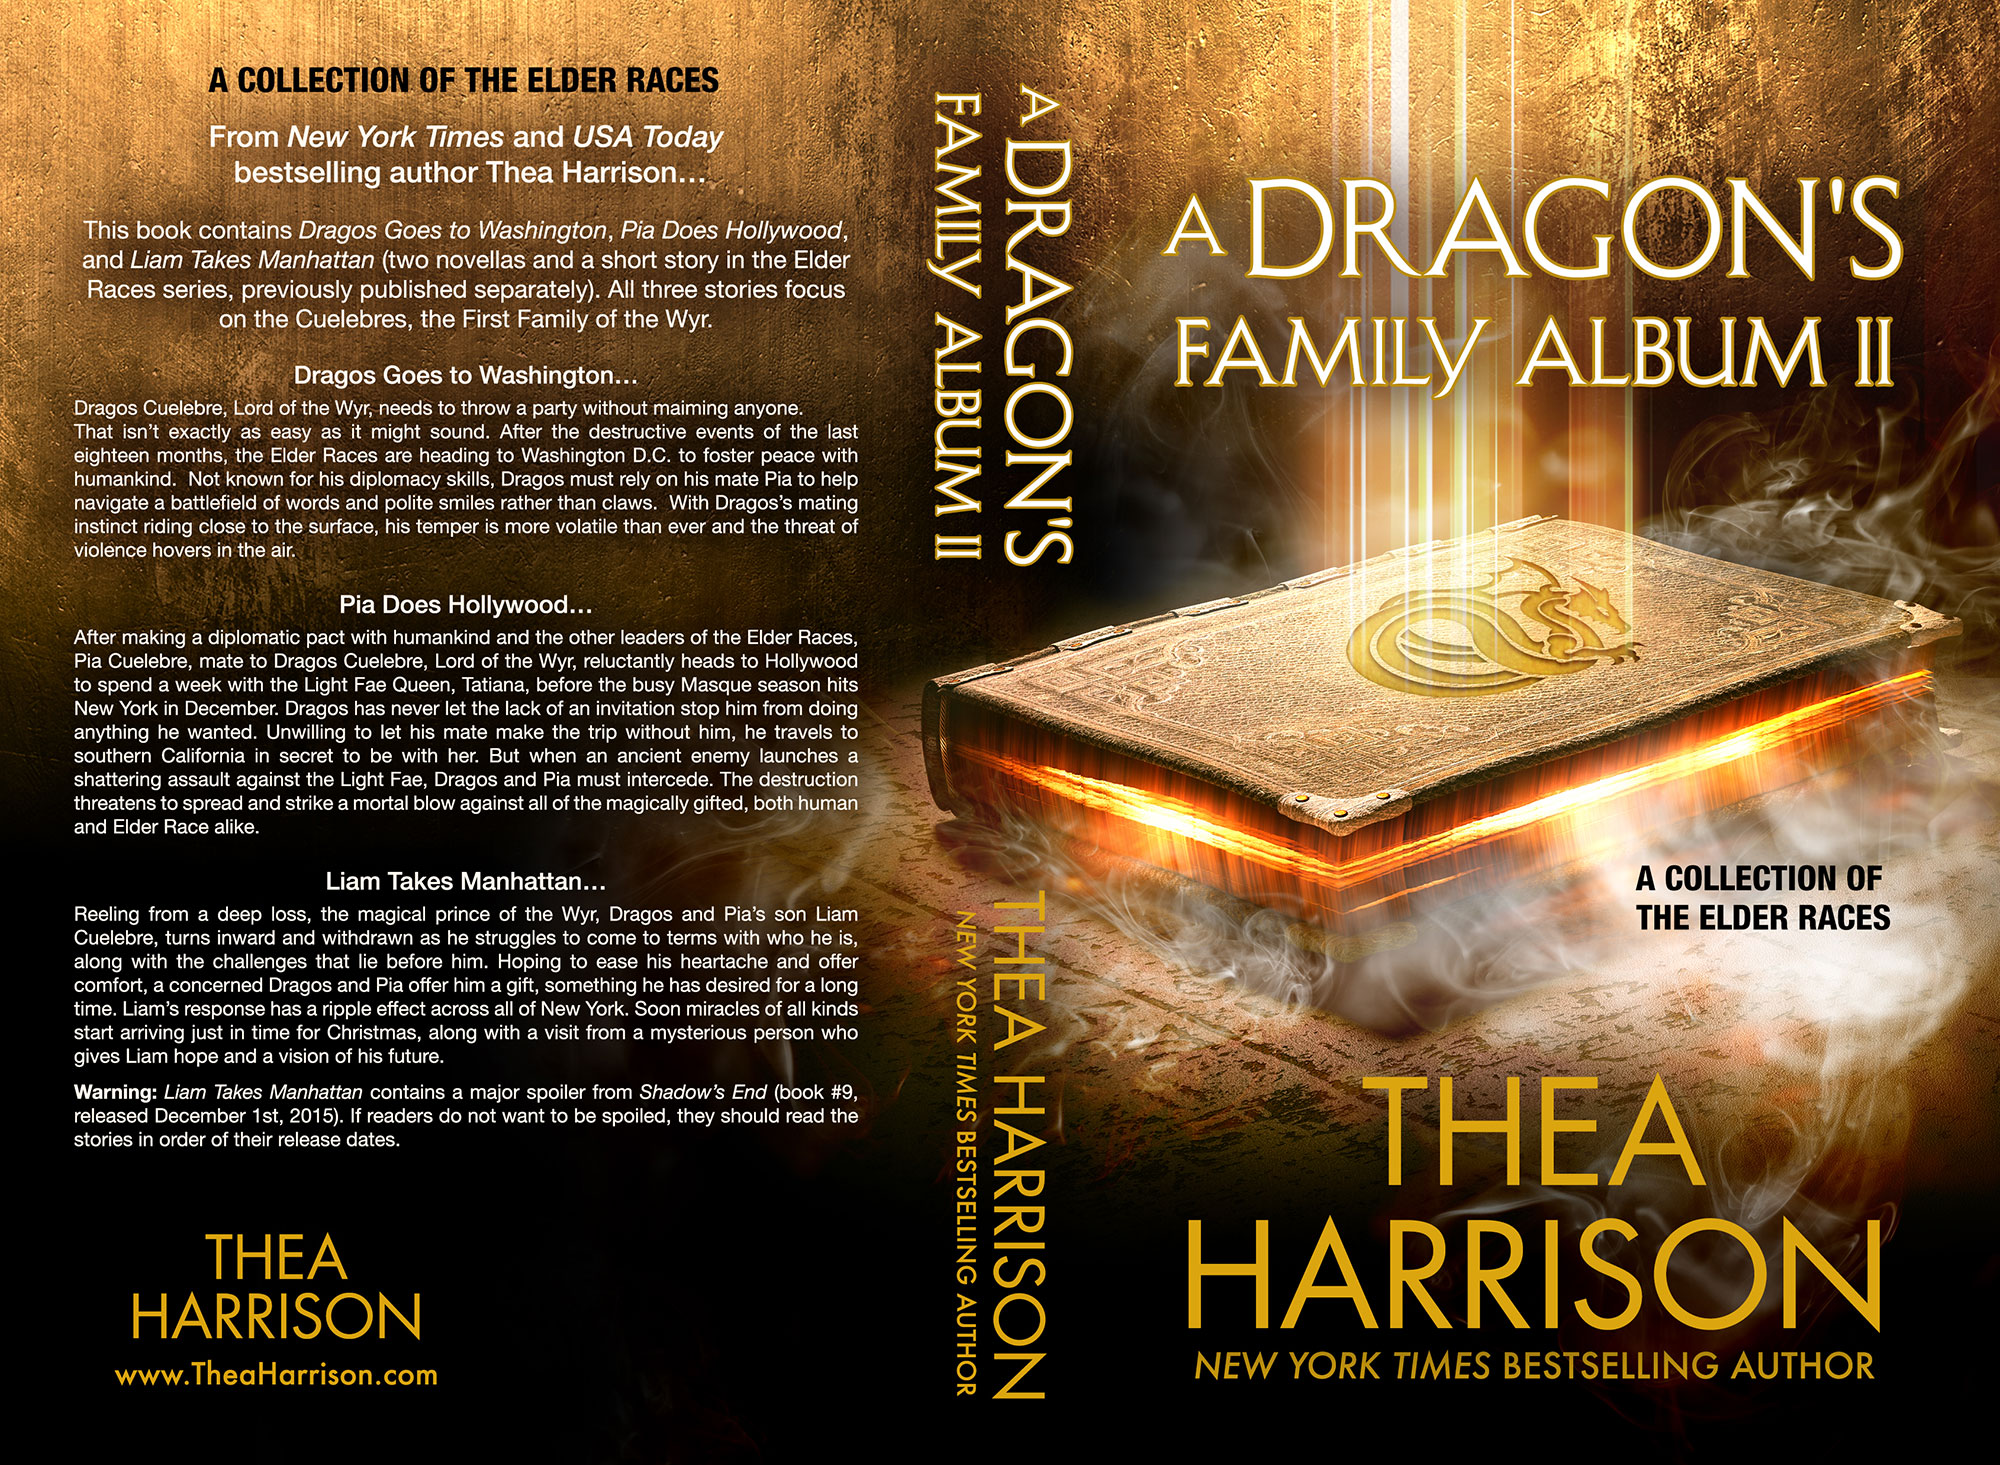 A Dragons Family Album II By Thea Harrison Print Coverflat